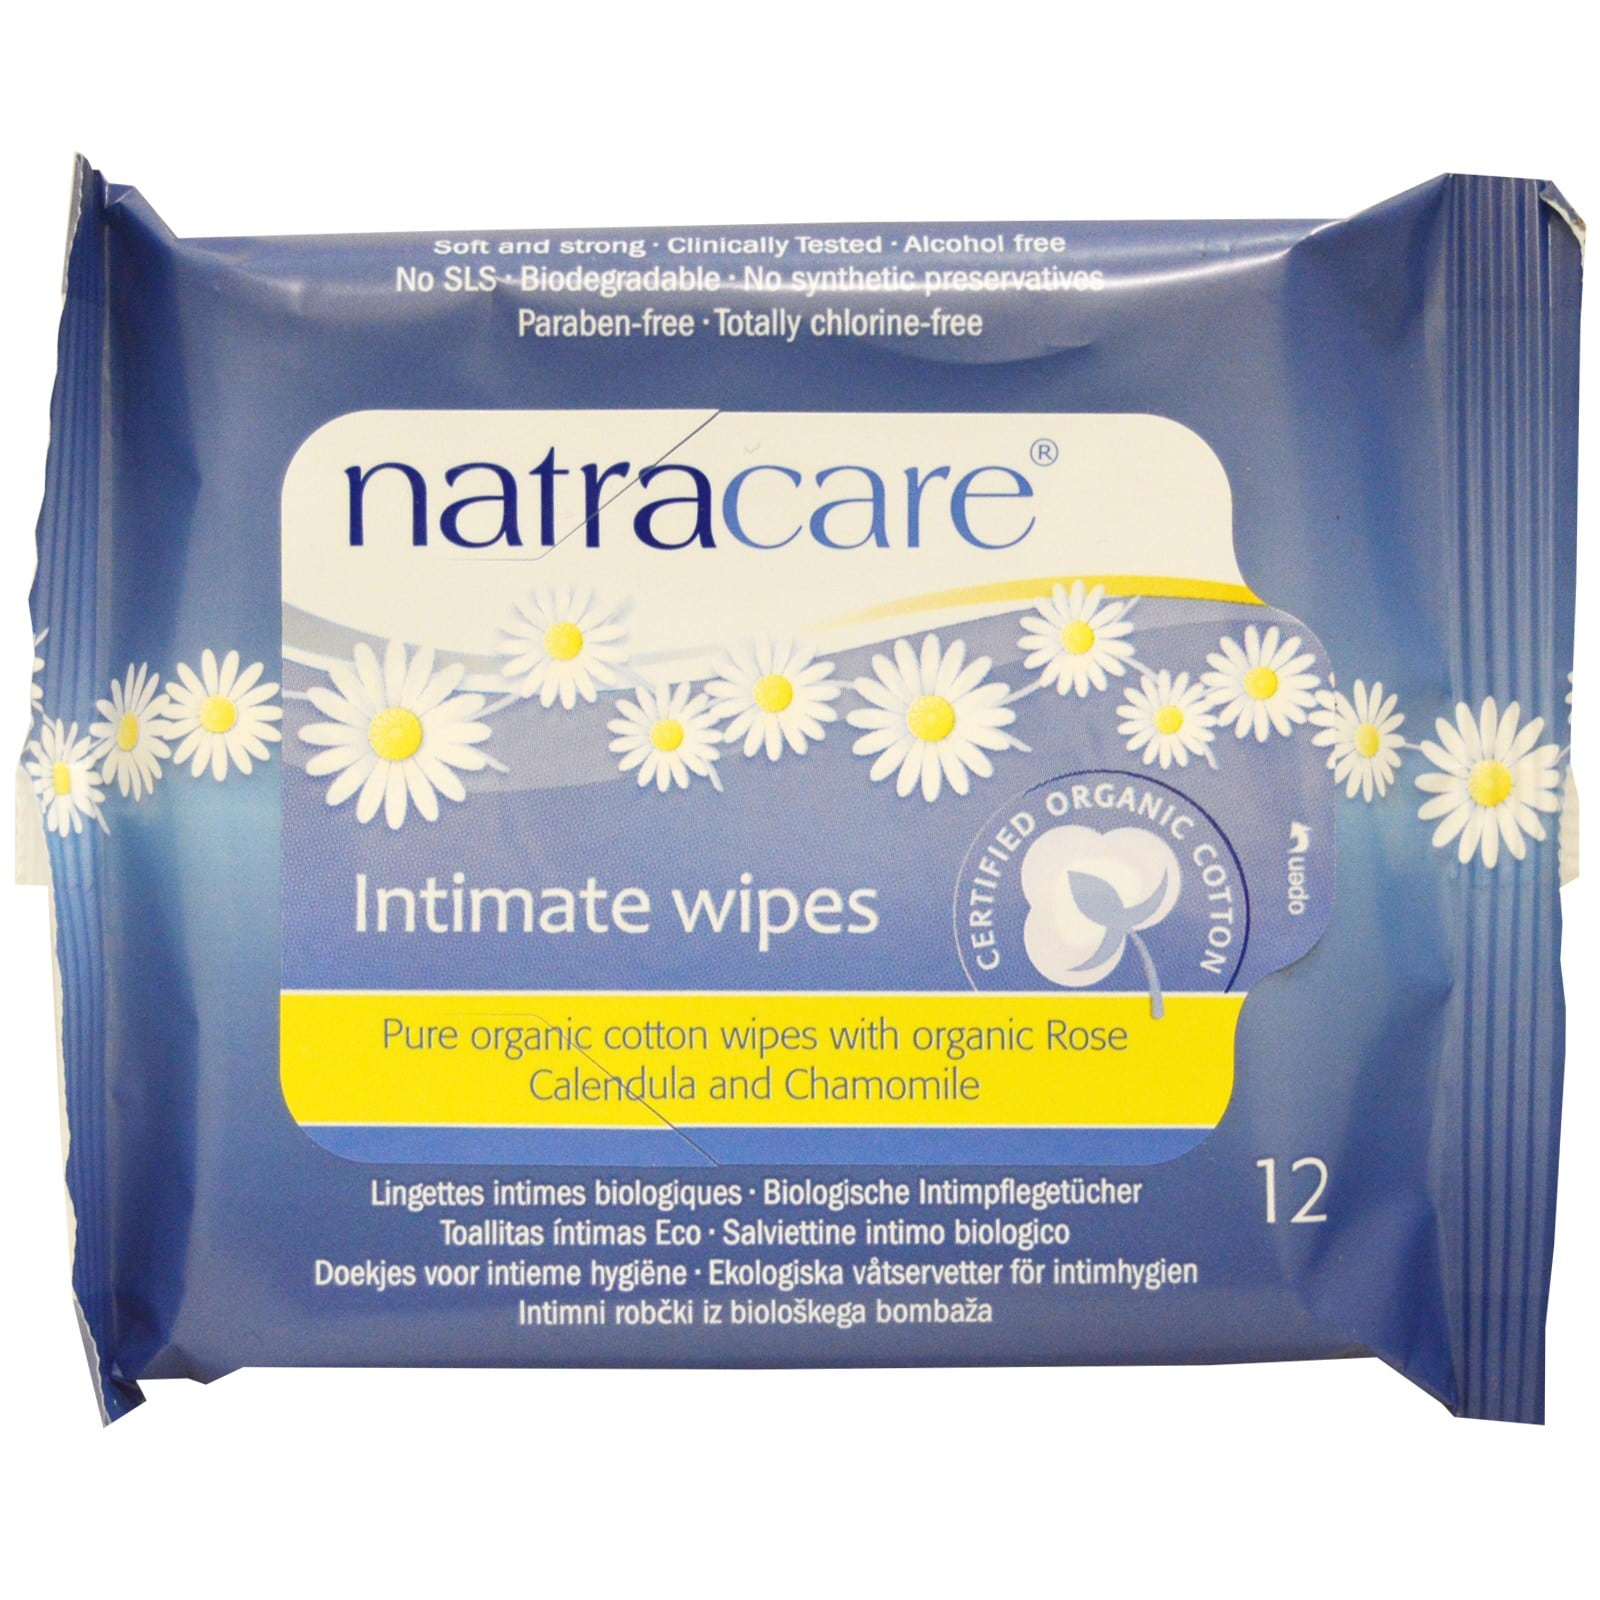 Natracare Organic Cotton Intimate Wipes 12 pcs